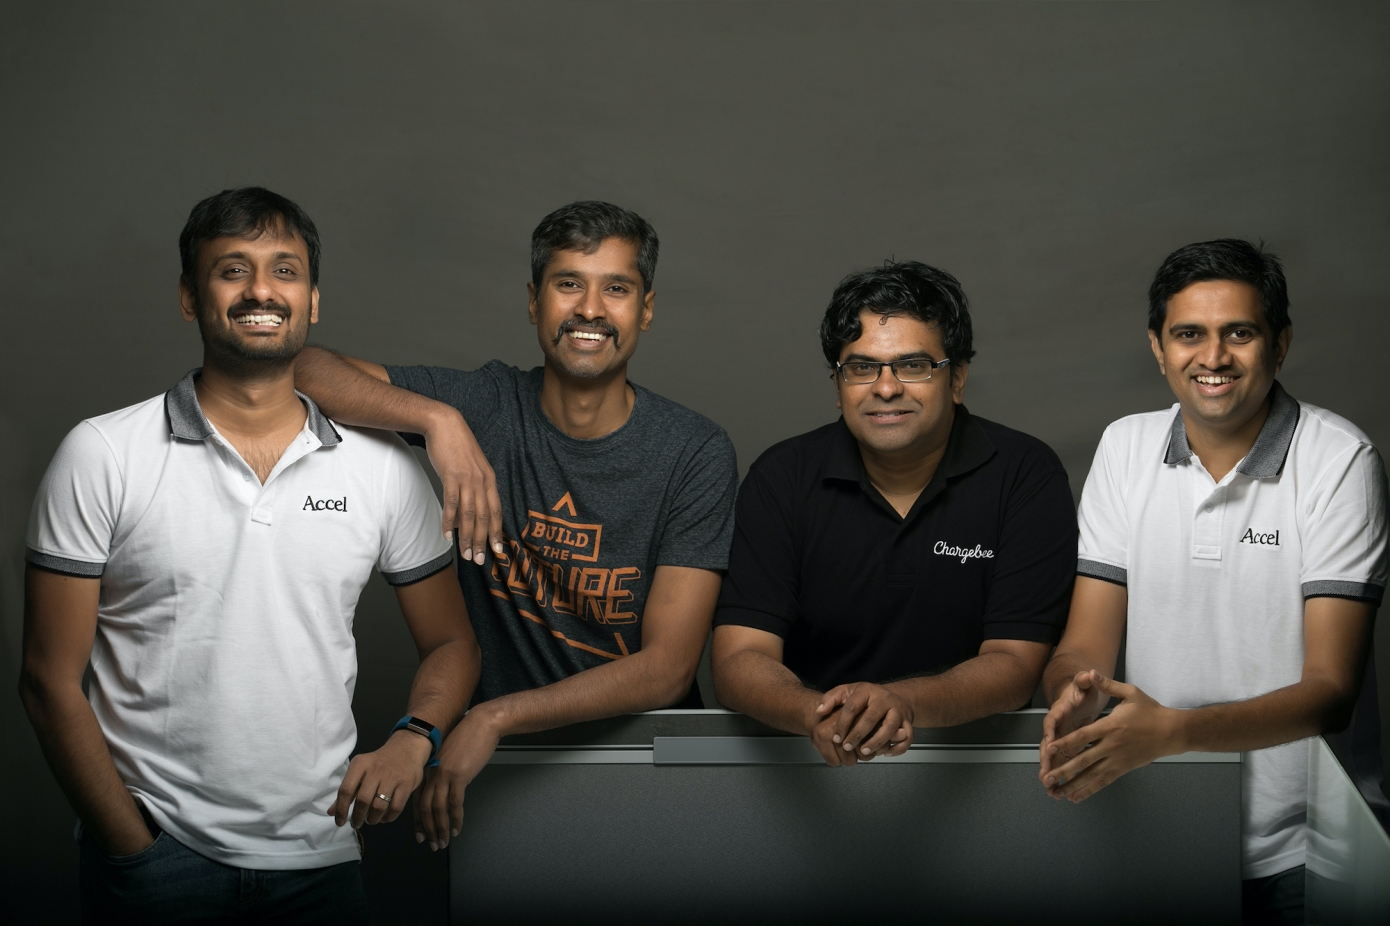 Chargebee raises $55 million to help businesses move to subscriptions